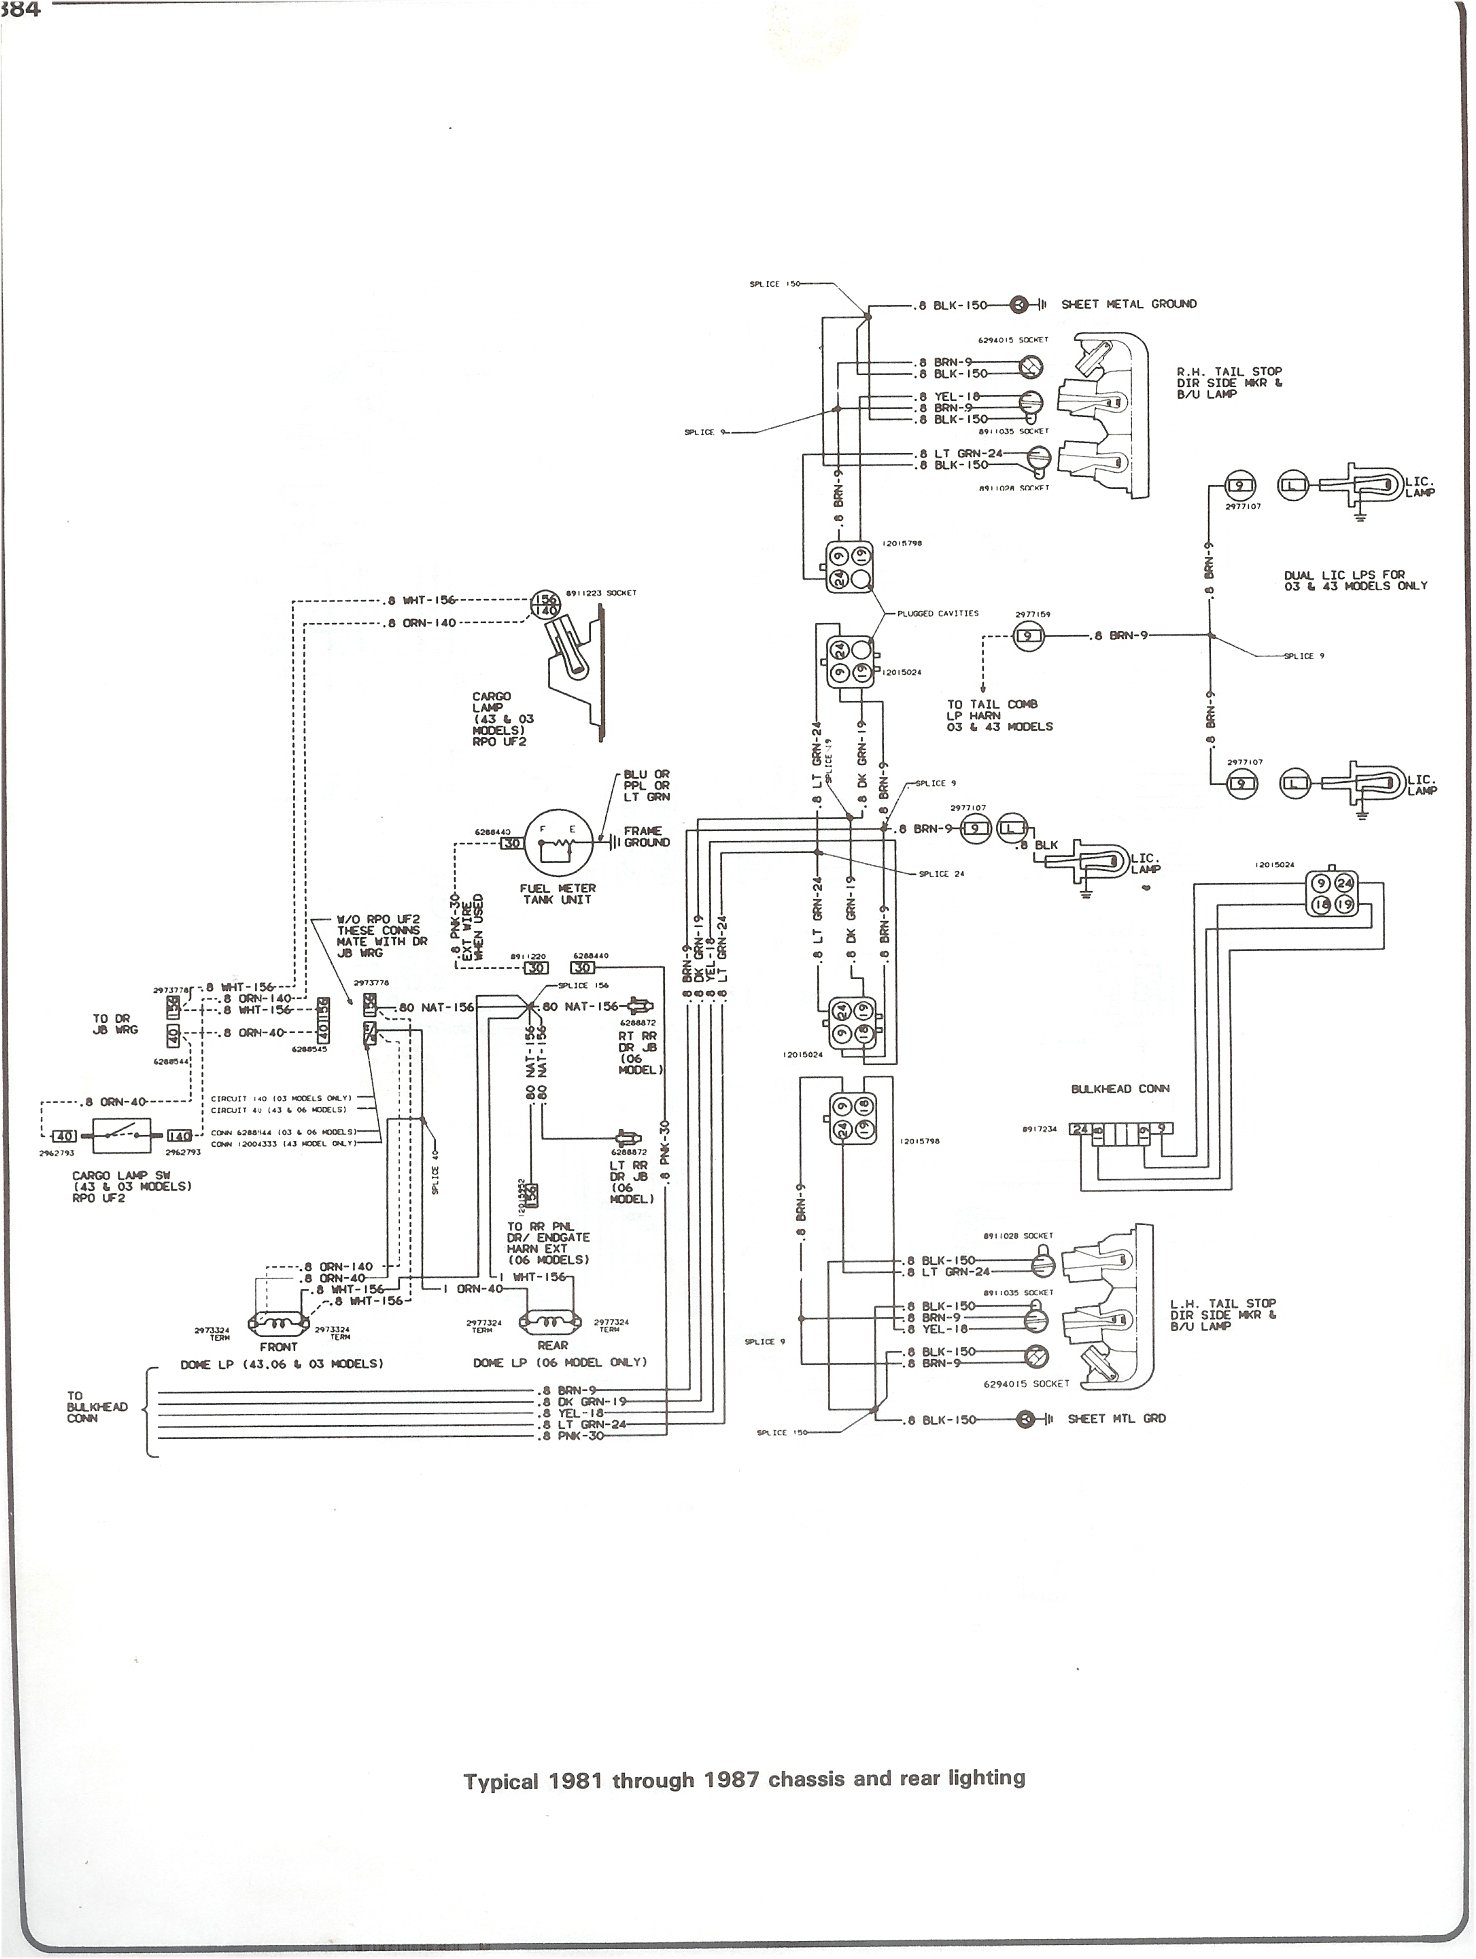 93 Chevy 1500 Starter Wiring Diagram Simple Guide About 1993 Tahoe Silverado Drawing At Getdrawings Com Free For